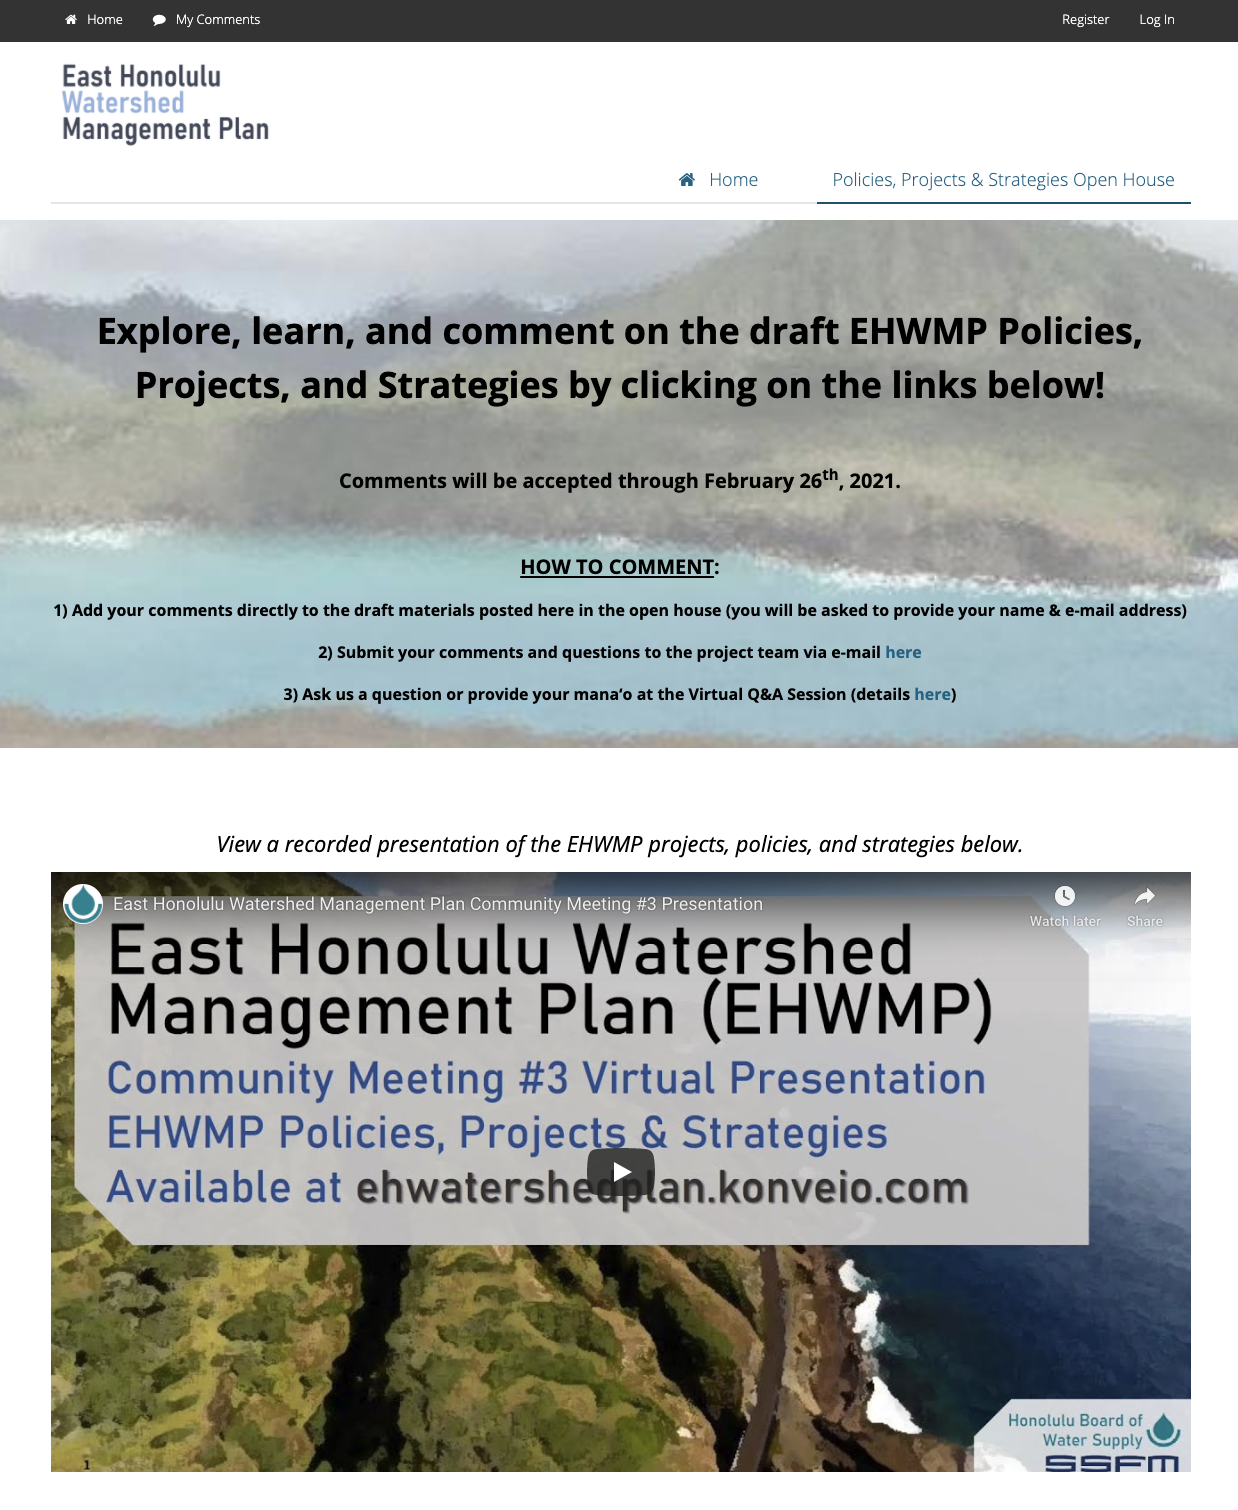 east honolulu watershed management plan open house